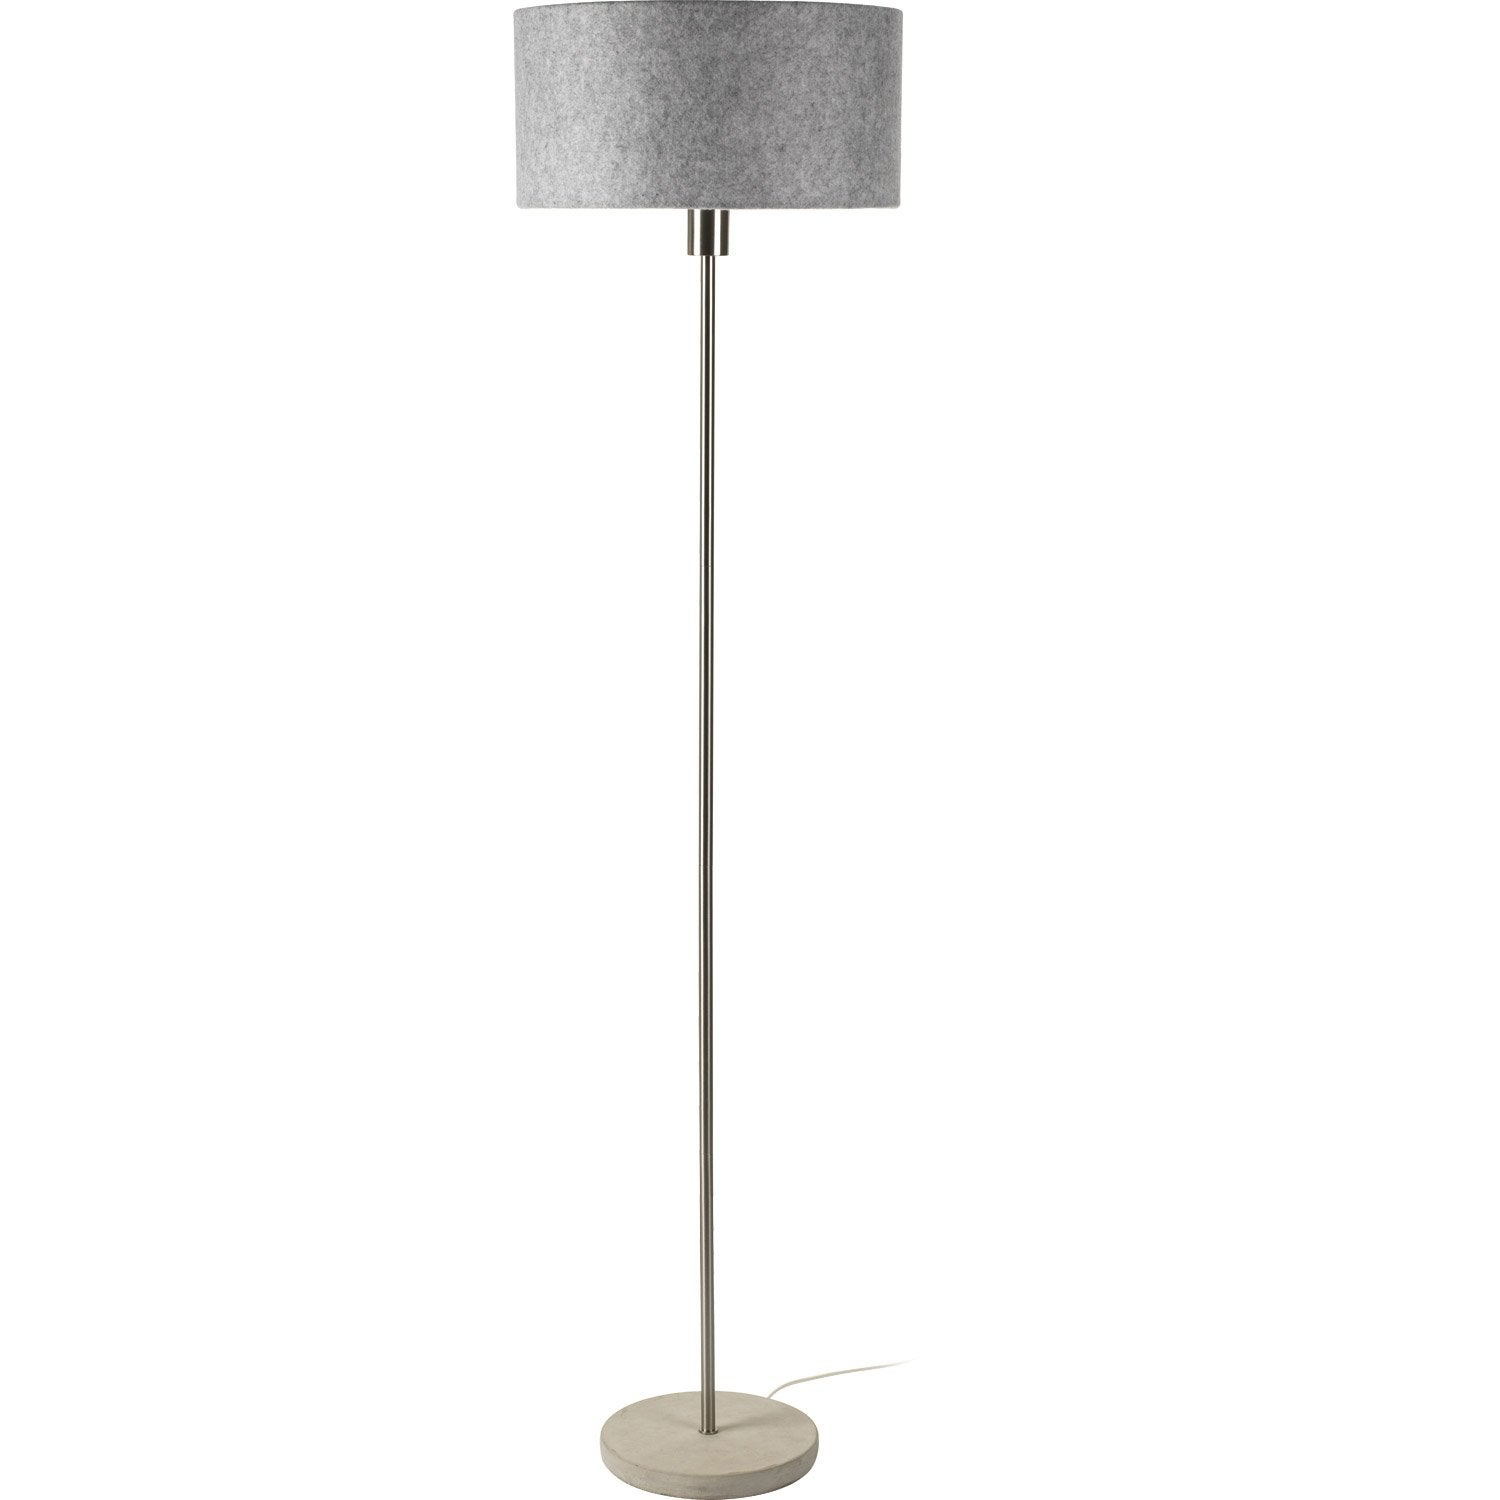 lampadaire felty 160 cm gris 60 w leroy merlin. Black Bedroom Furniture Sets. Home Design Ideas